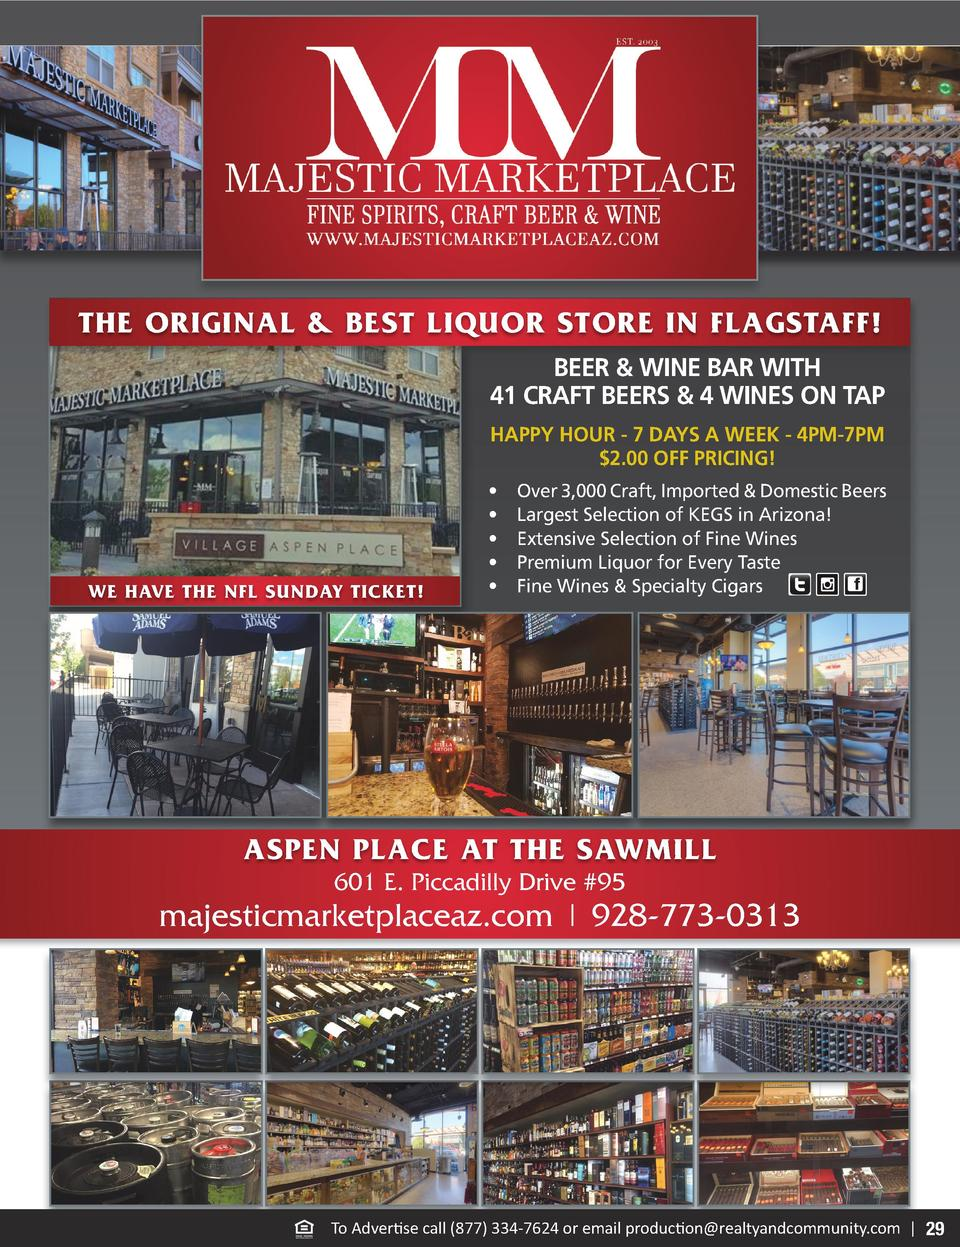 THE ORIGINAL   BEST LIQUOR STORE IN FLAGSTAFF  BEER   WINE BAR WITH 41 CRAFT BEERS   4 WINES ON TAP HAPPY HOUR - 7 DAYS A ...